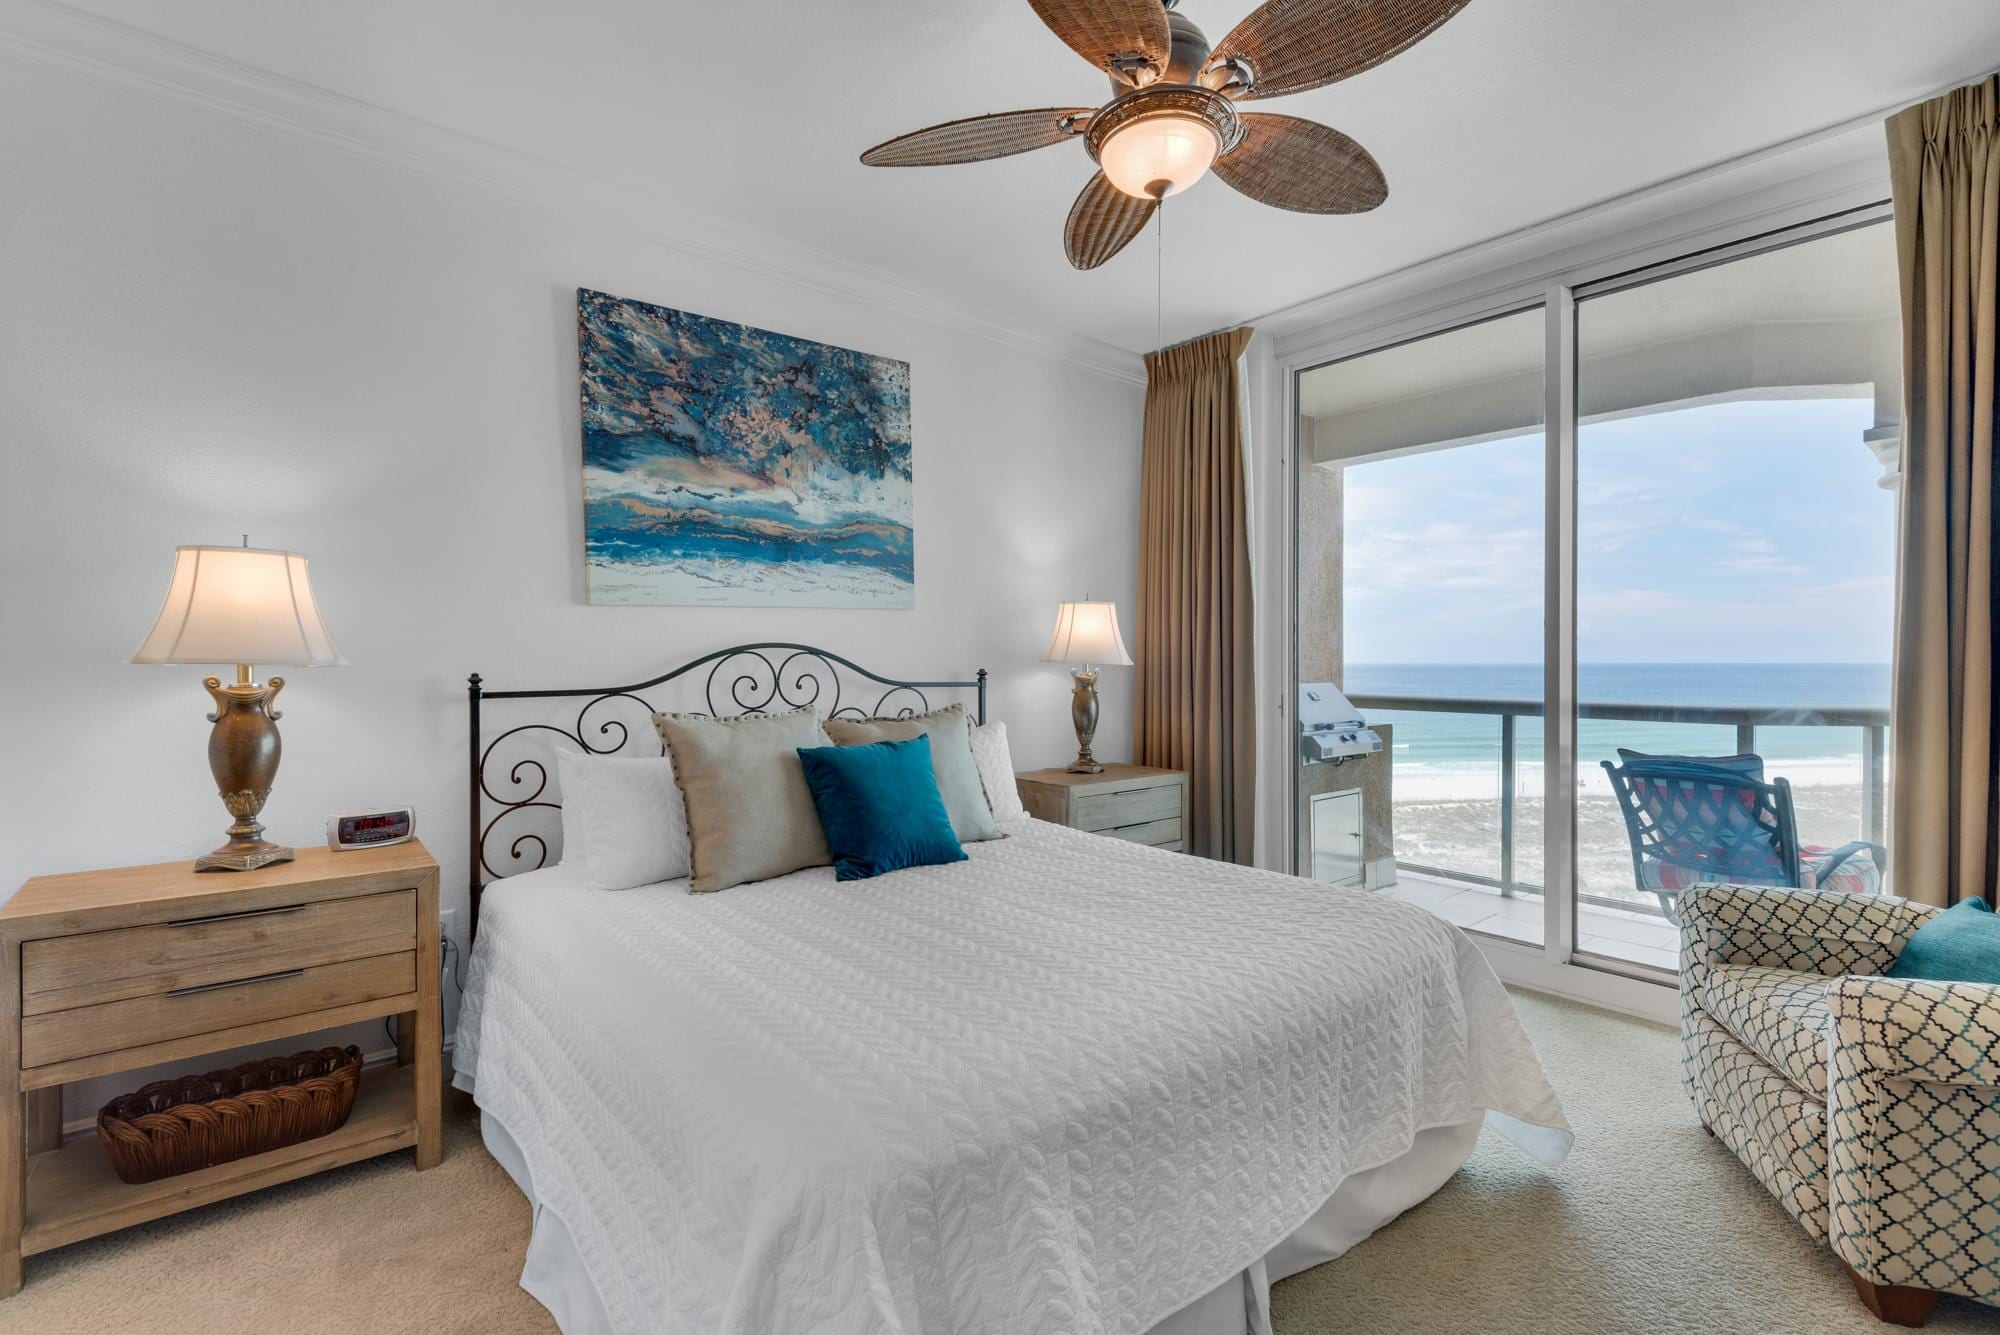 Beach condo master bedroom, overlooking Gulf Coast, classy interior design with turquoise, cream, and white.